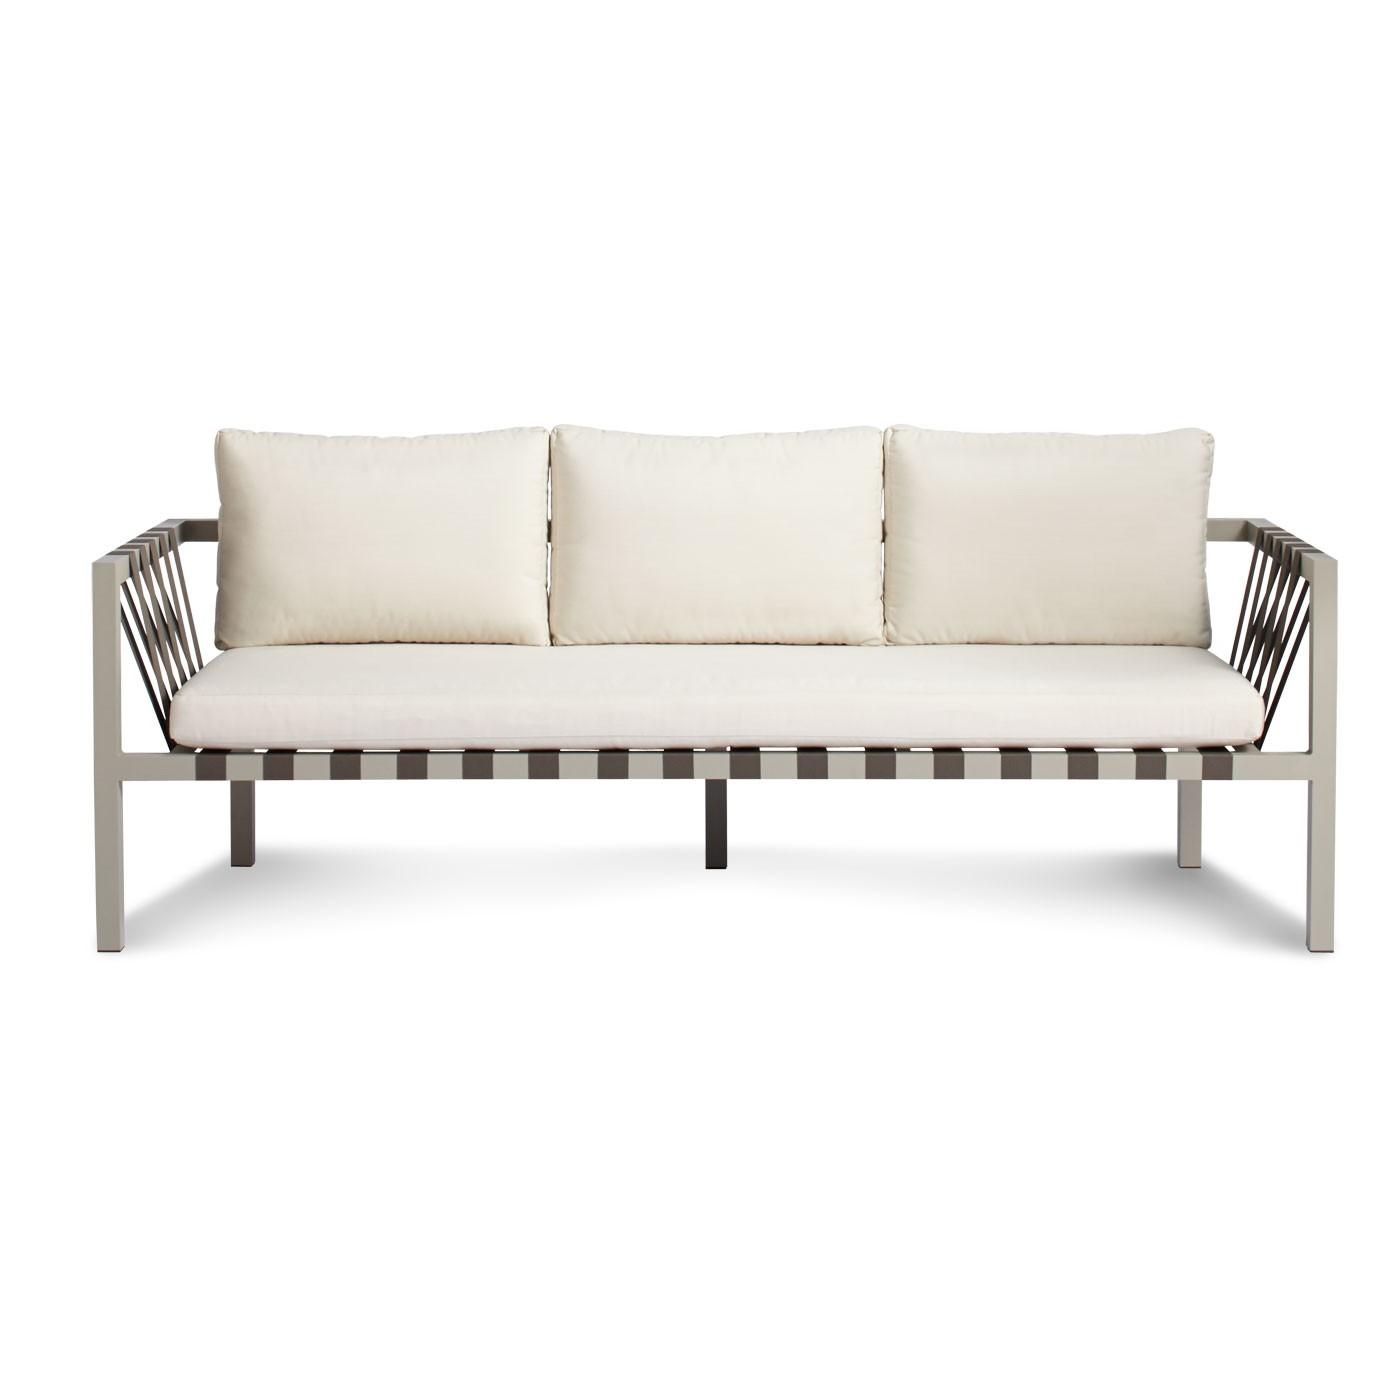 Jibe Outdoor 3 Seat Sofa – Modern Outdoor Sofas | Blu Dot In Modern 3 Seater Sofas (View 16 of 20)